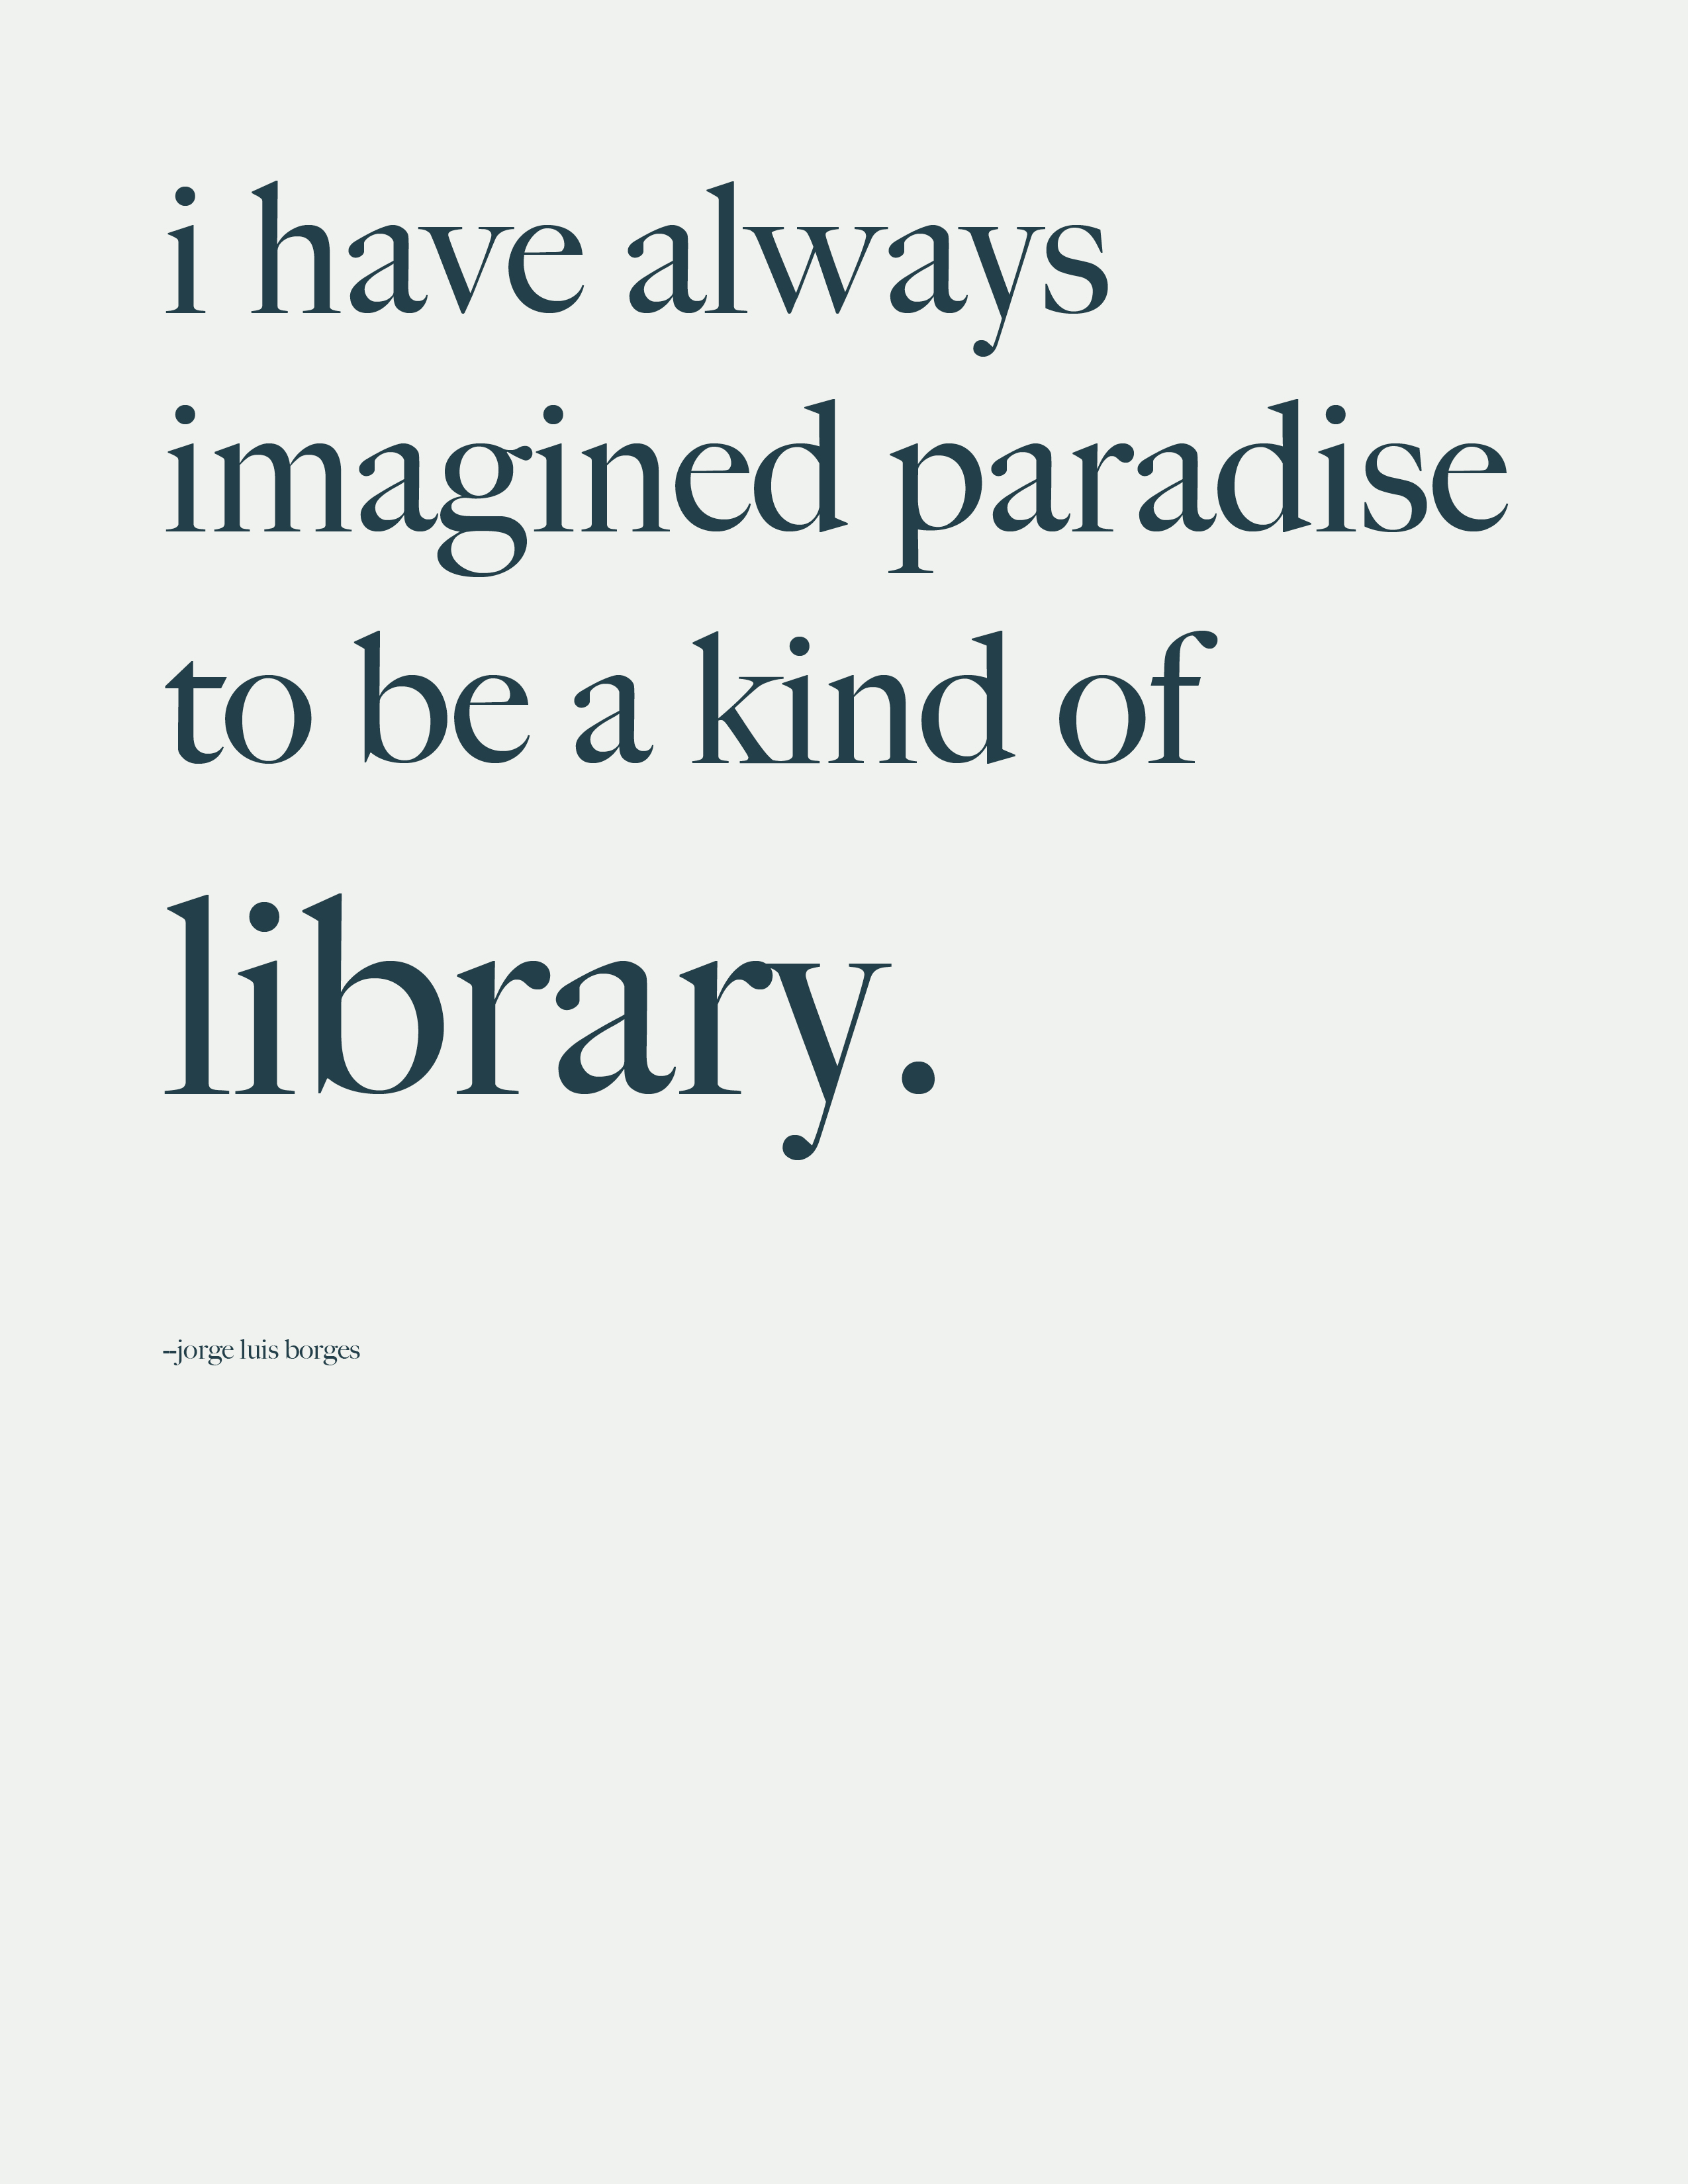 I have always imagined paradise as a library jorge luis borges quote